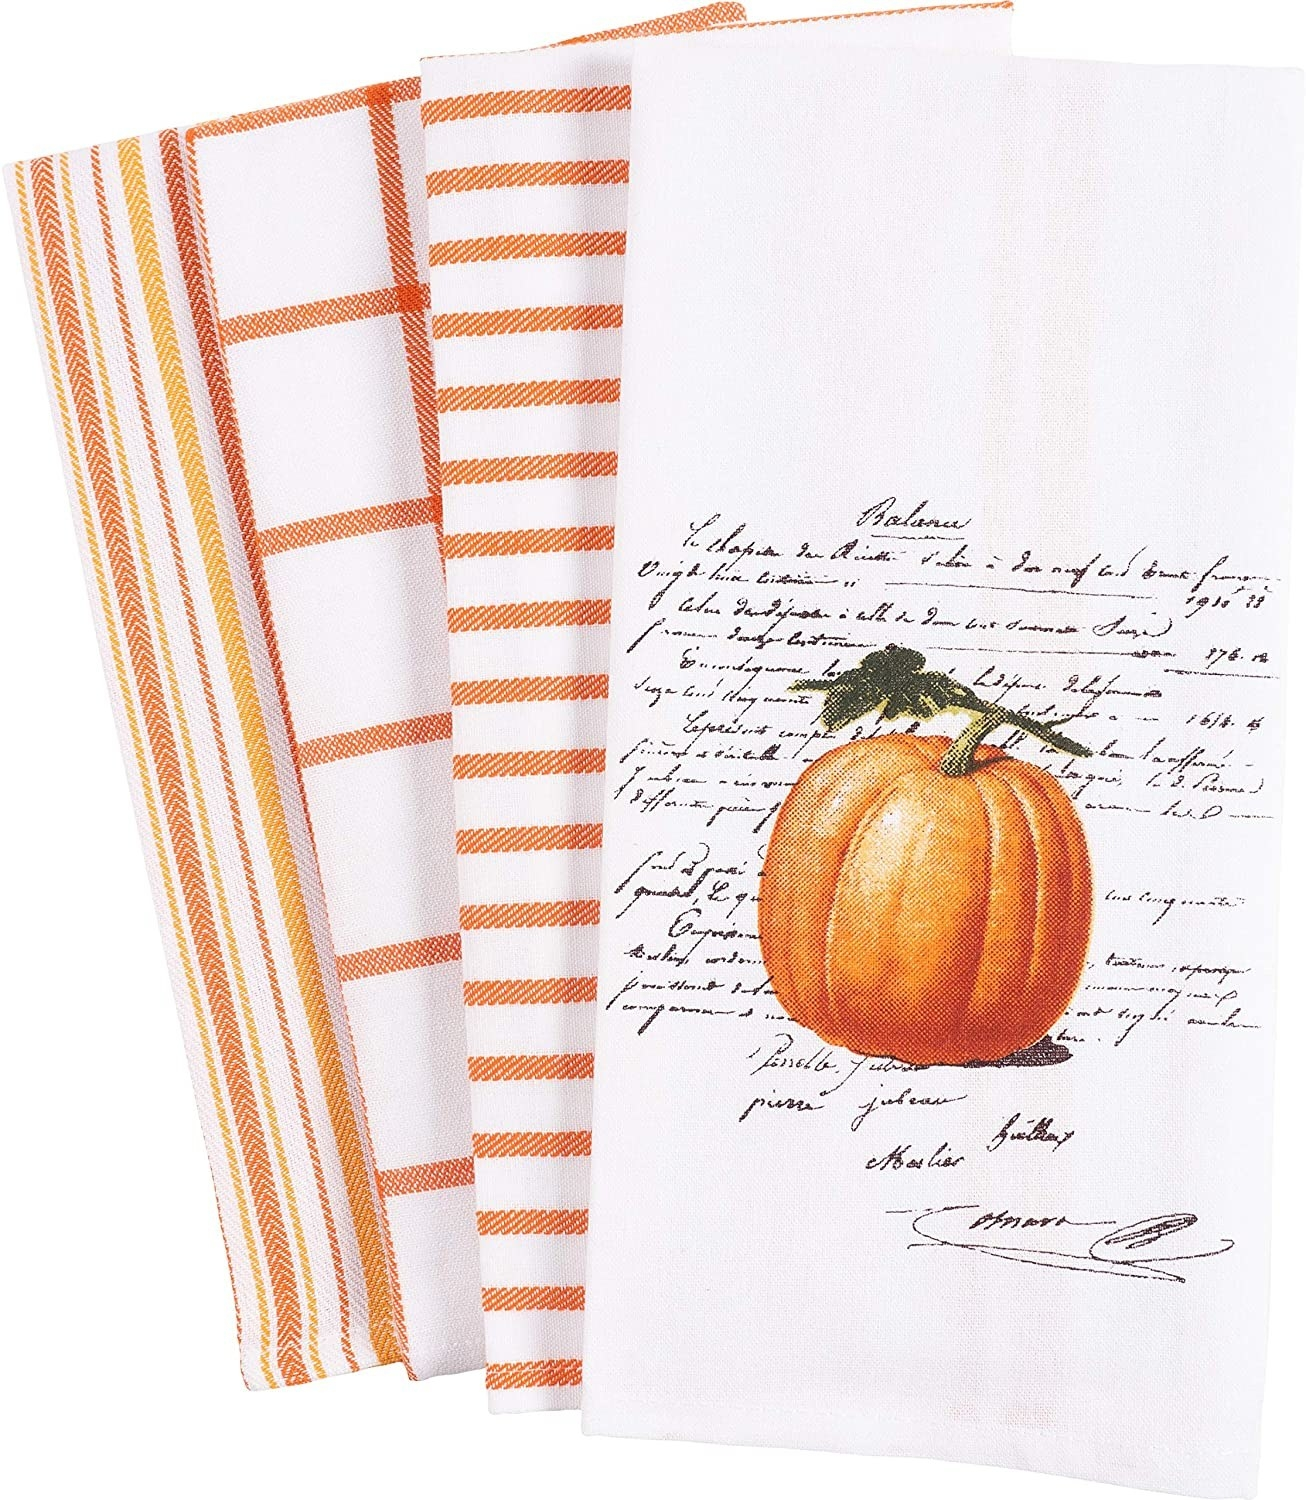 The set of towels are orange white striped patterns, except one which has a pumpkin and some script on it